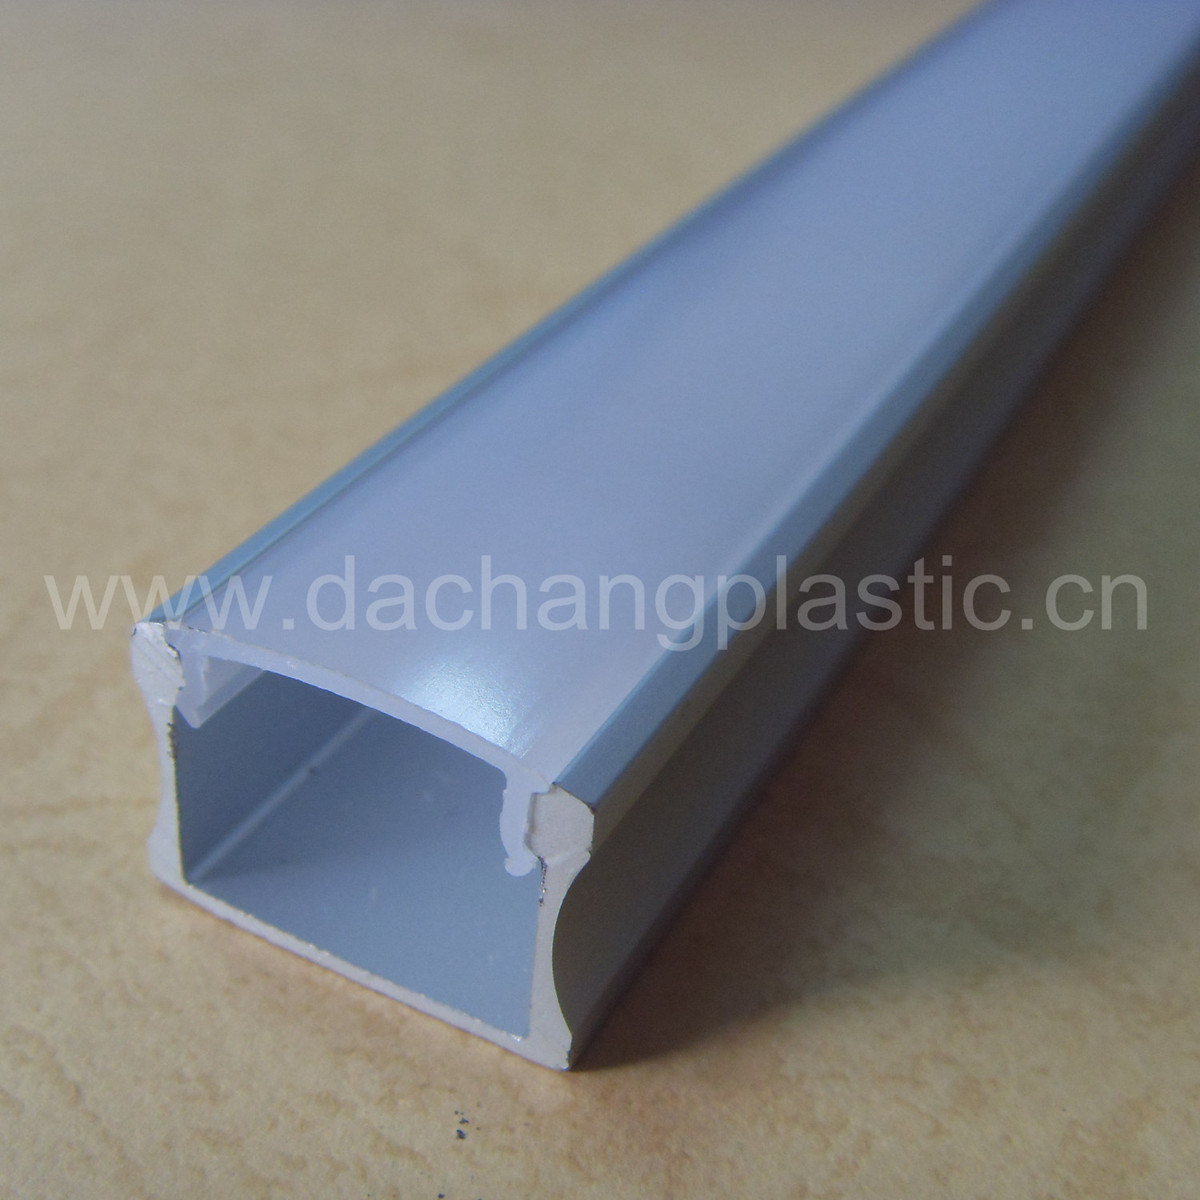 China Frosted Polycarbonate Profile For Led Light Diffuser